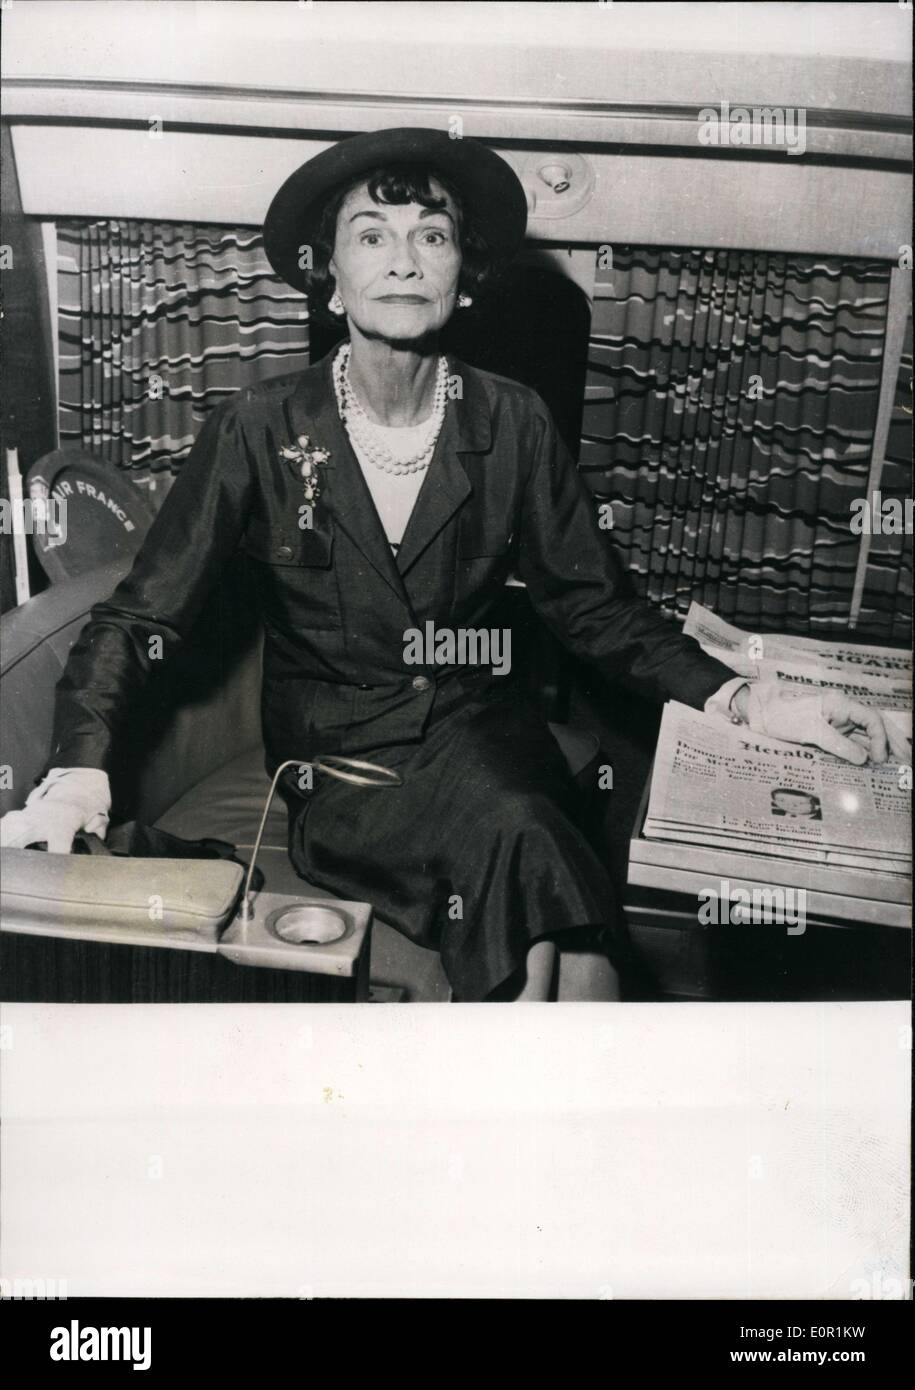 July 30, 1957 - couturier français, Coco Chanel Photo Stock bb4f7a20710